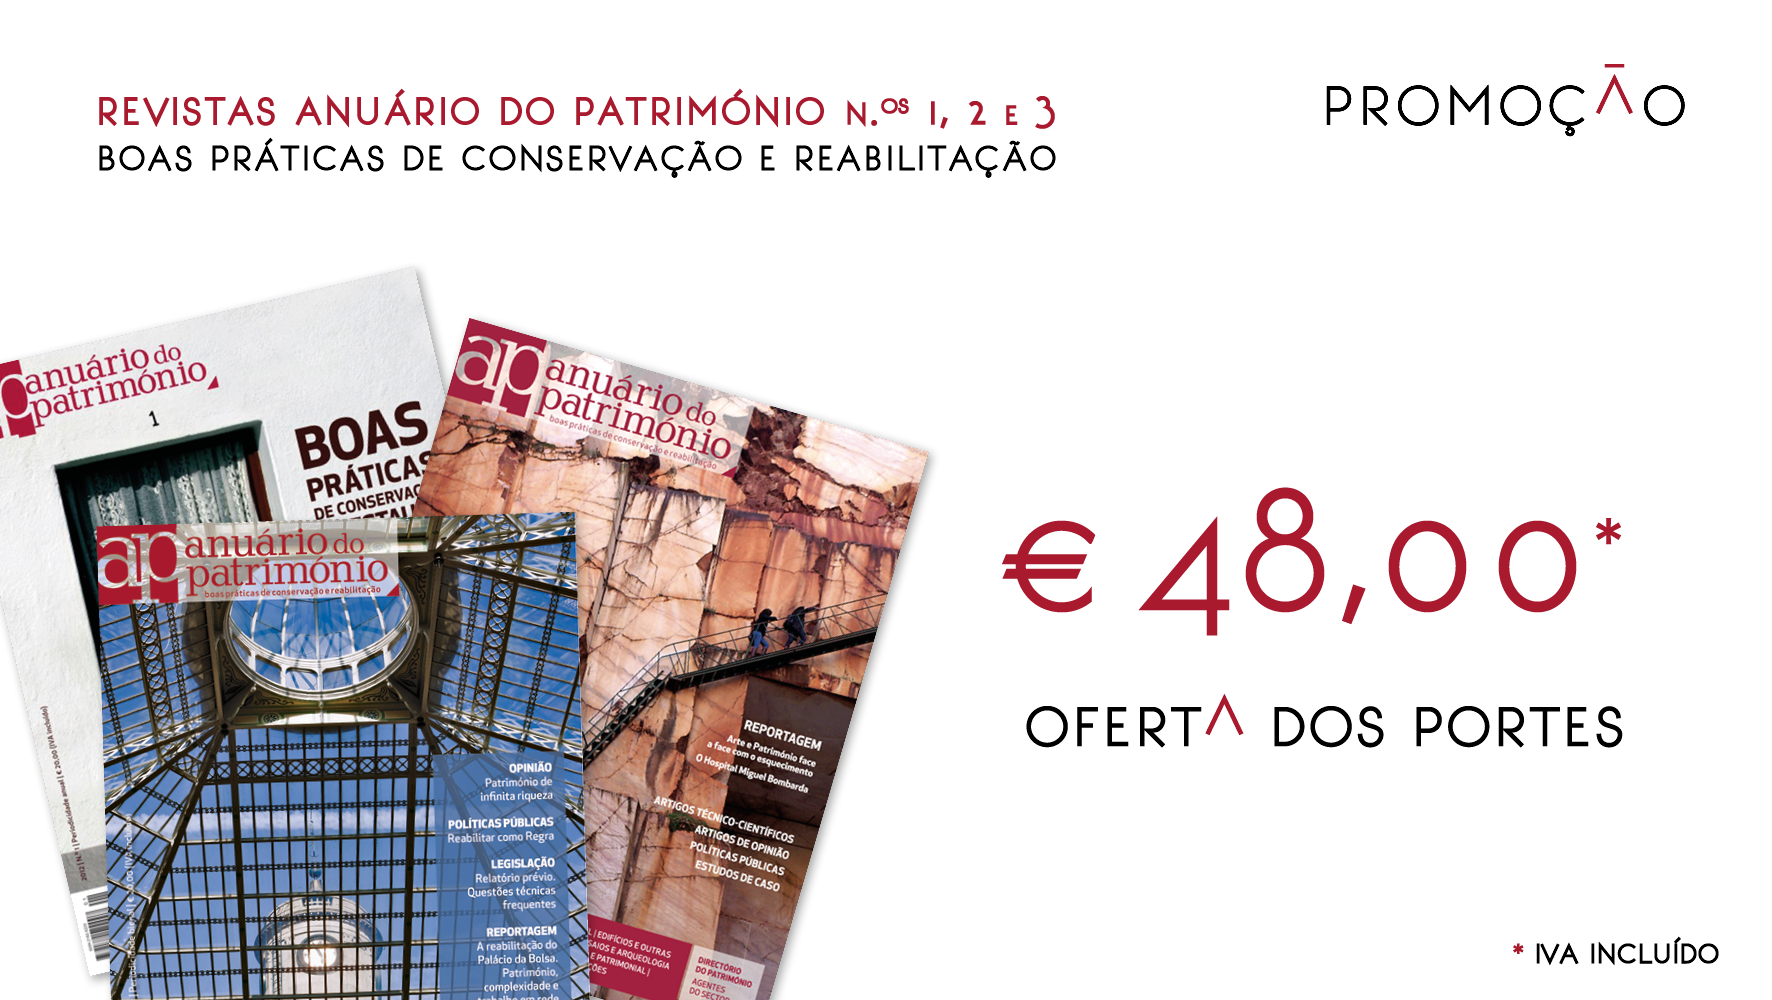 Revistas Anuário do Património 1, 2 e 3